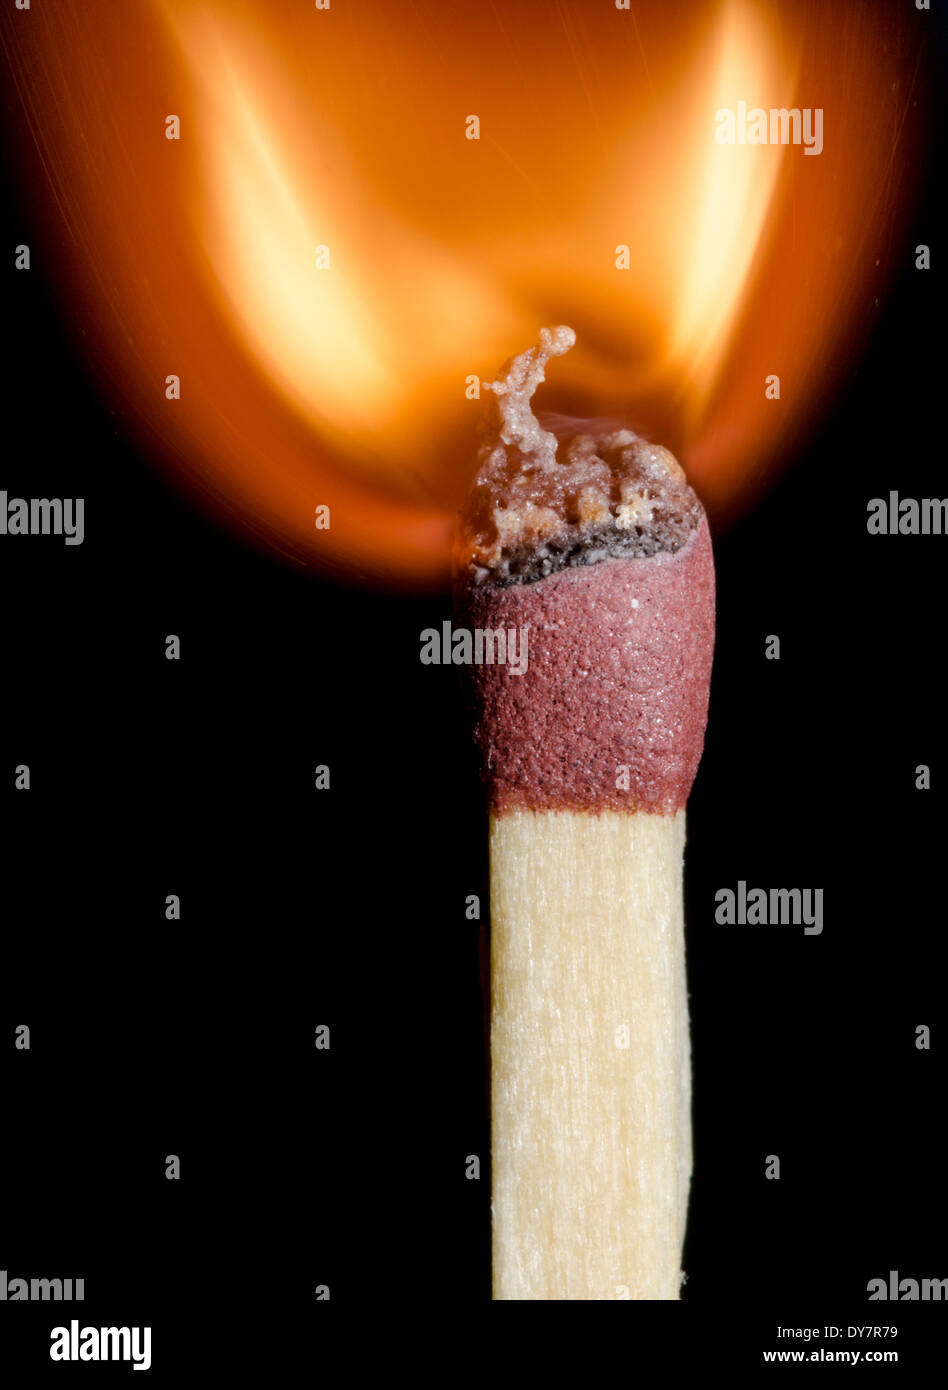 A match just as it is igniting, on a black background. - Stock Image